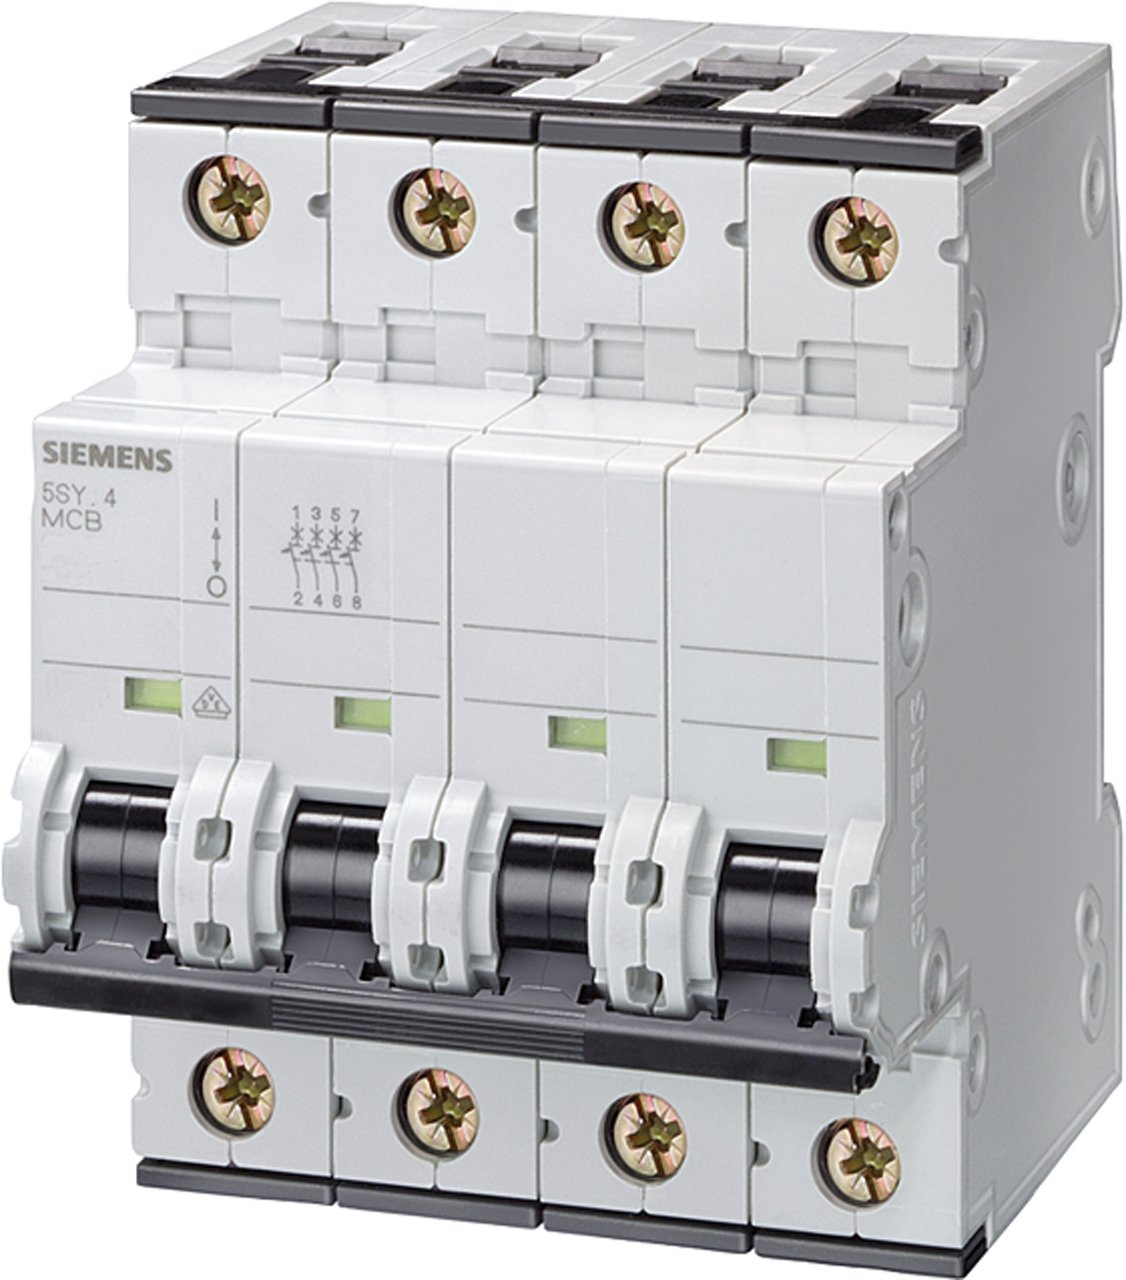 Siemens 5SY64257 Supplementary Protector, UL 1077 Rated, 4 Pole Breaker, 25 Ampere Maximum, Tripping Characteristic C, DIN Rail Mounted